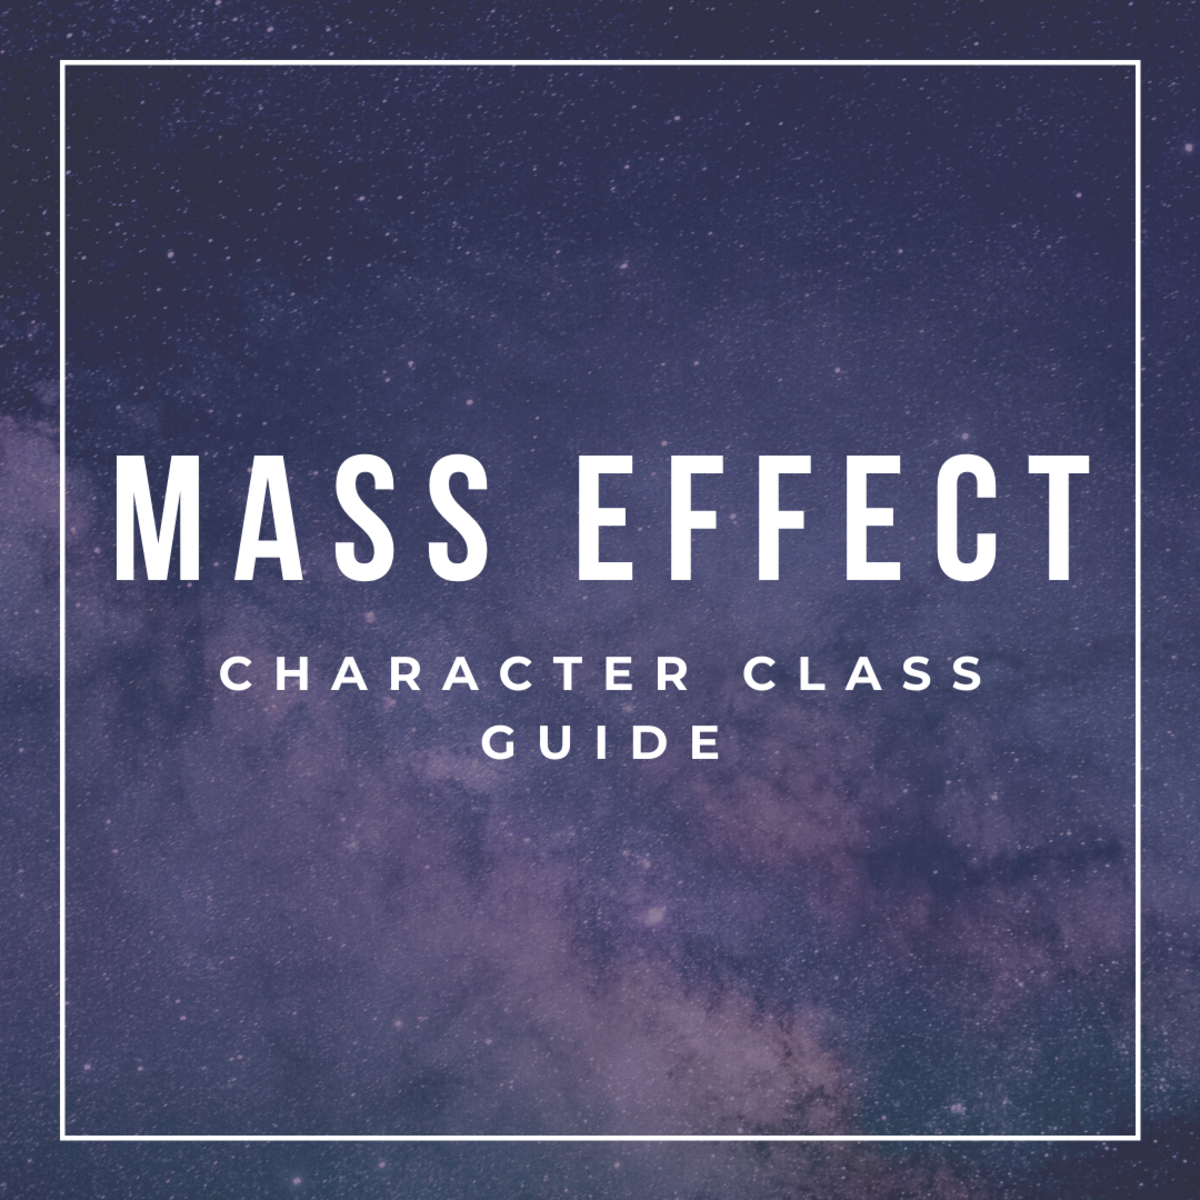 Follow this guide to find the best character class for your playstyle.